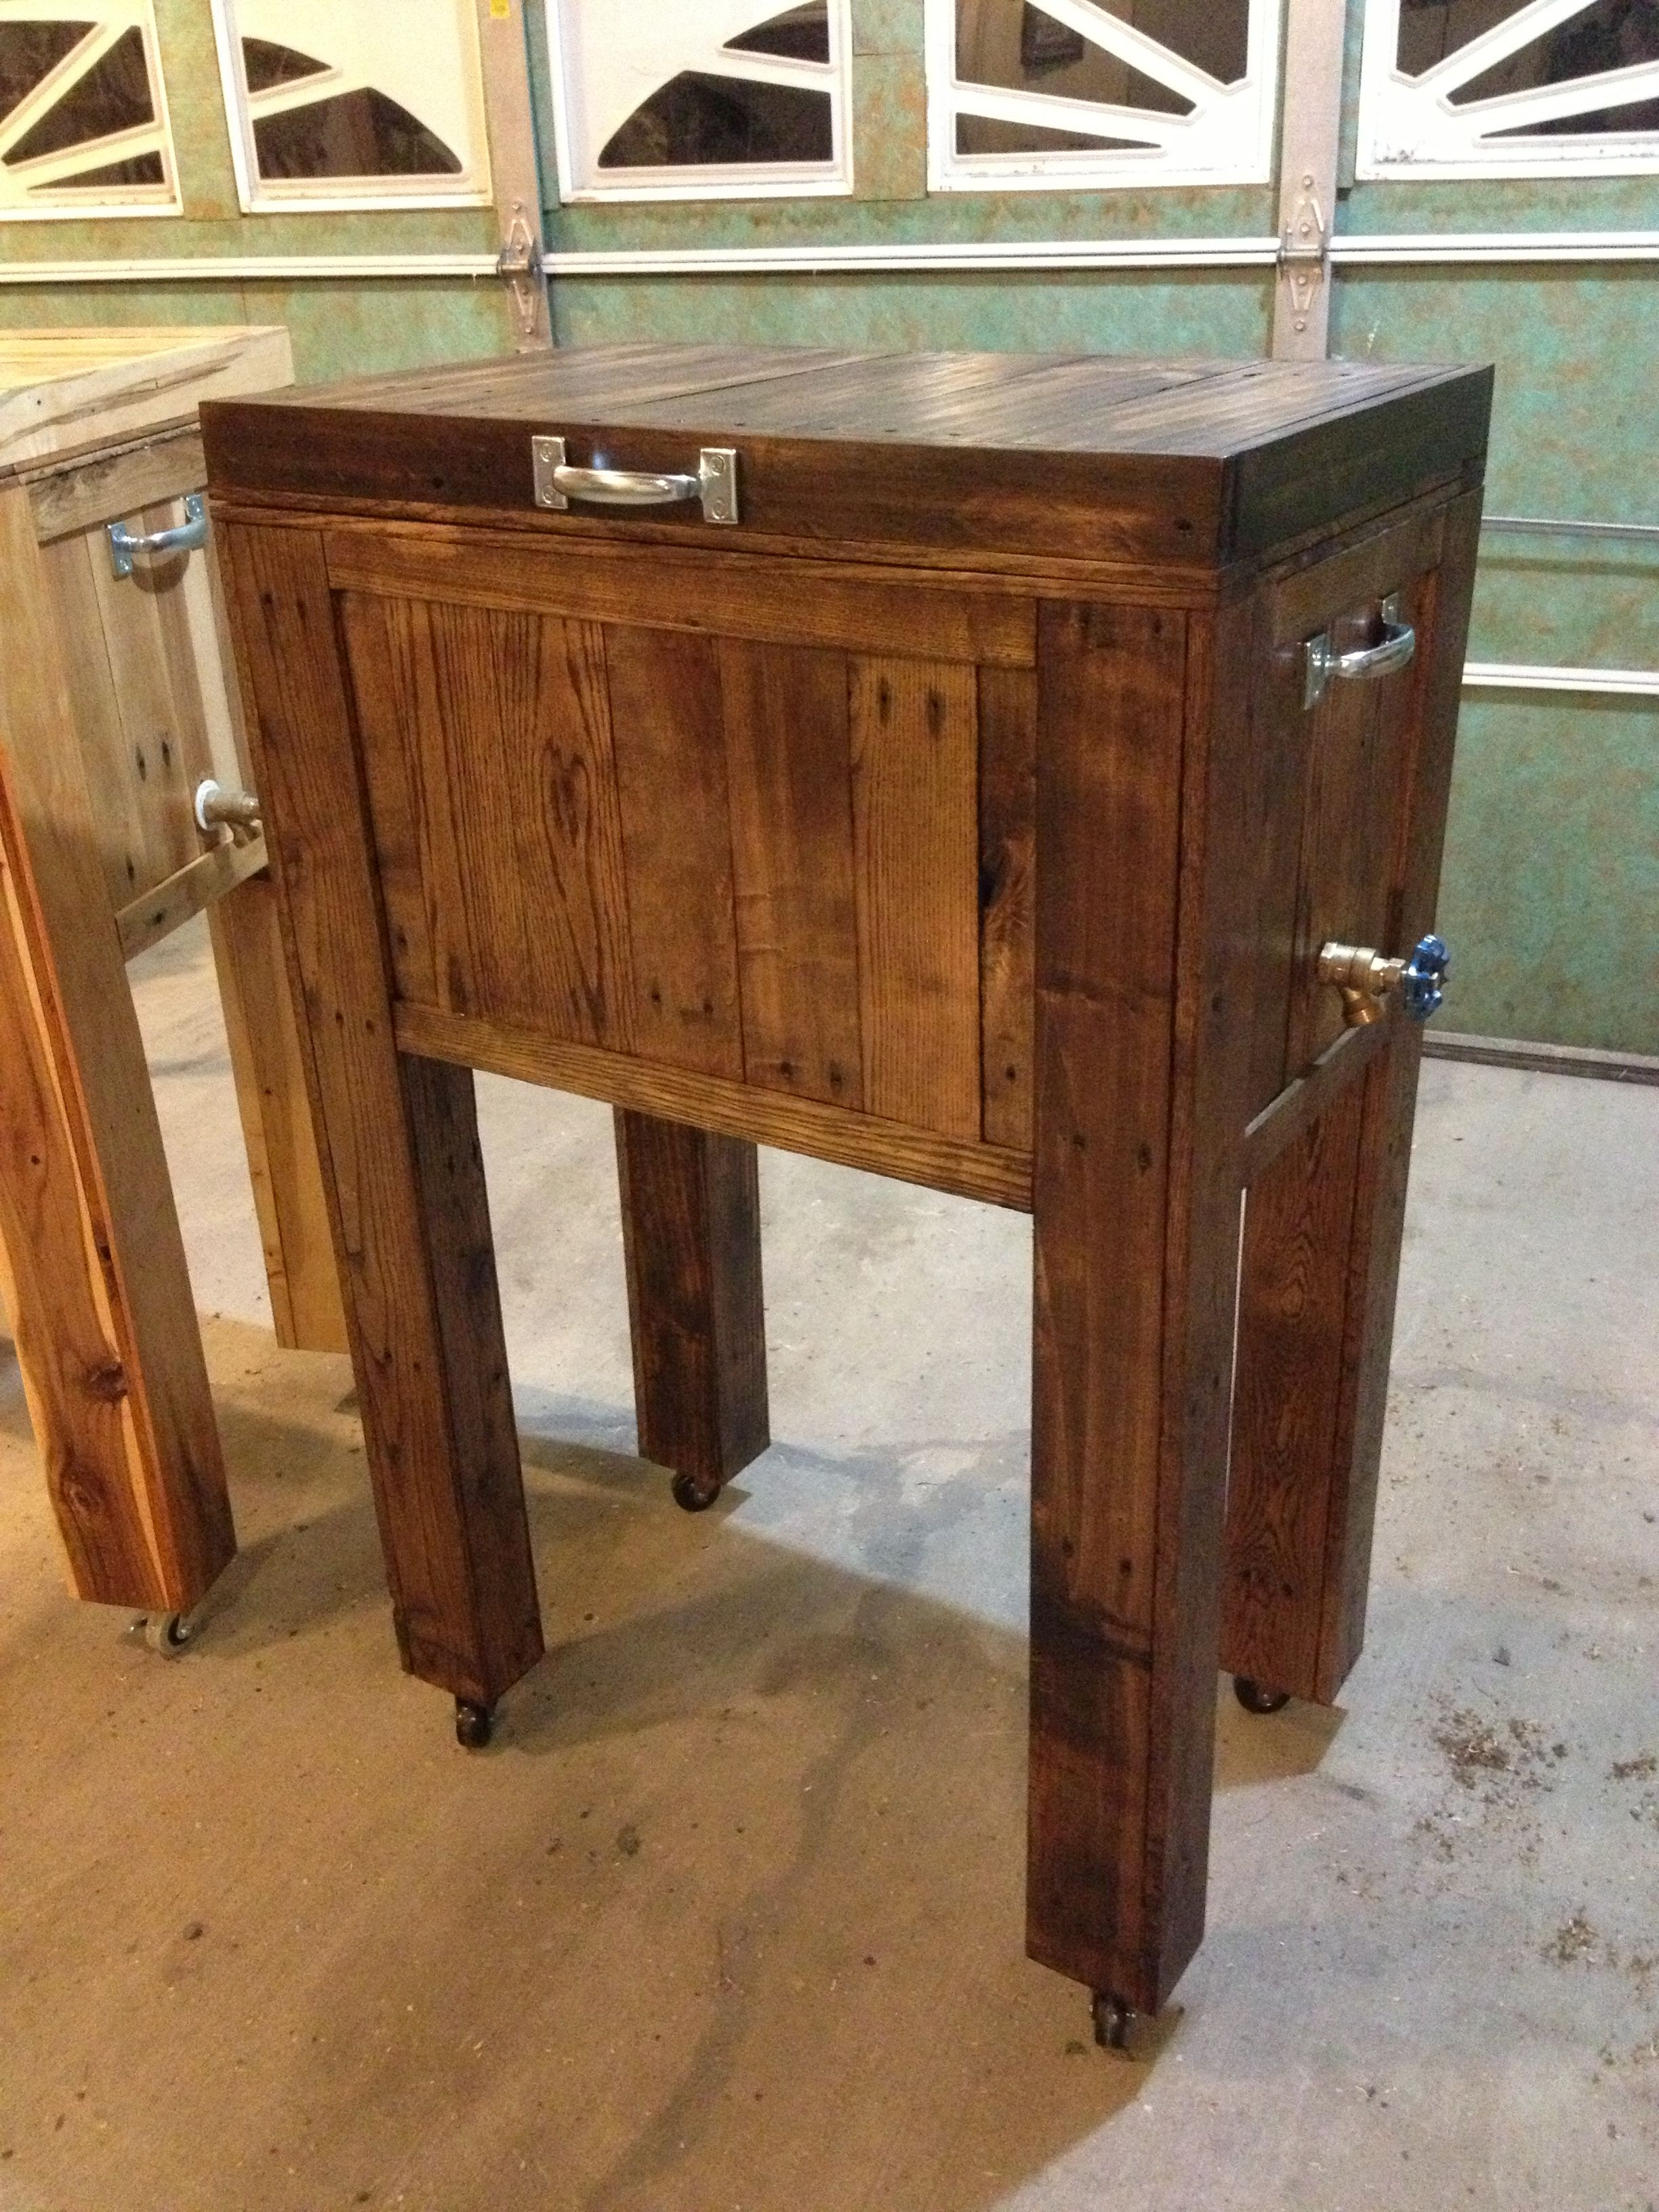 Reclaimed Wood Rustic Home Office: Rustic Home Made Cooler. Reclaimed/pallet Wood. Black